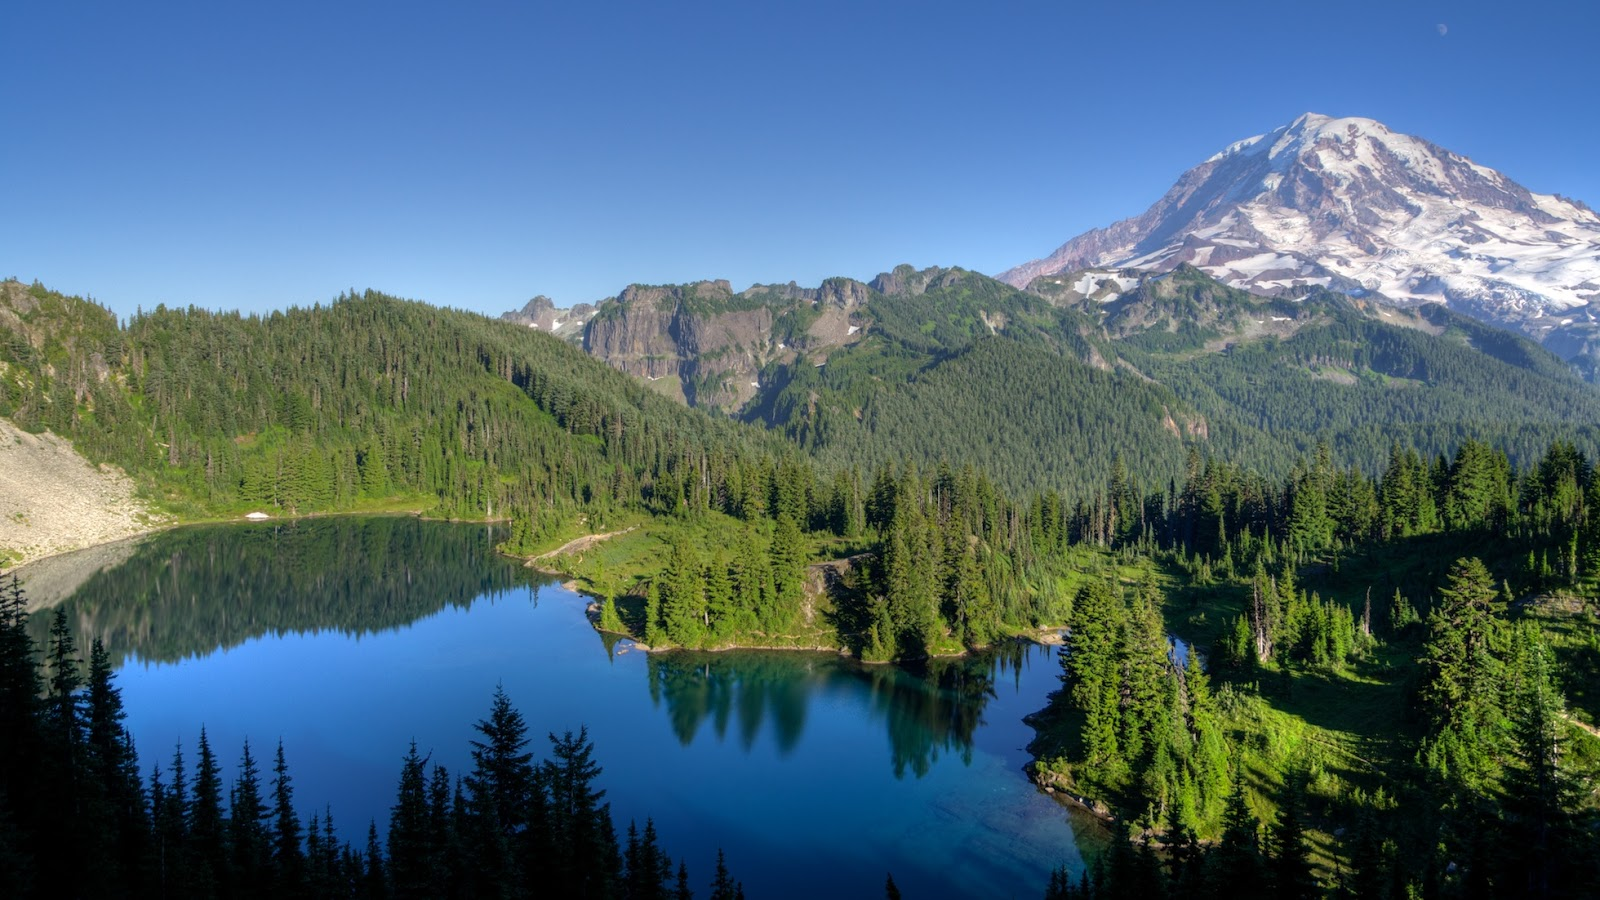 How To Get To Mount Rainier Without A Car